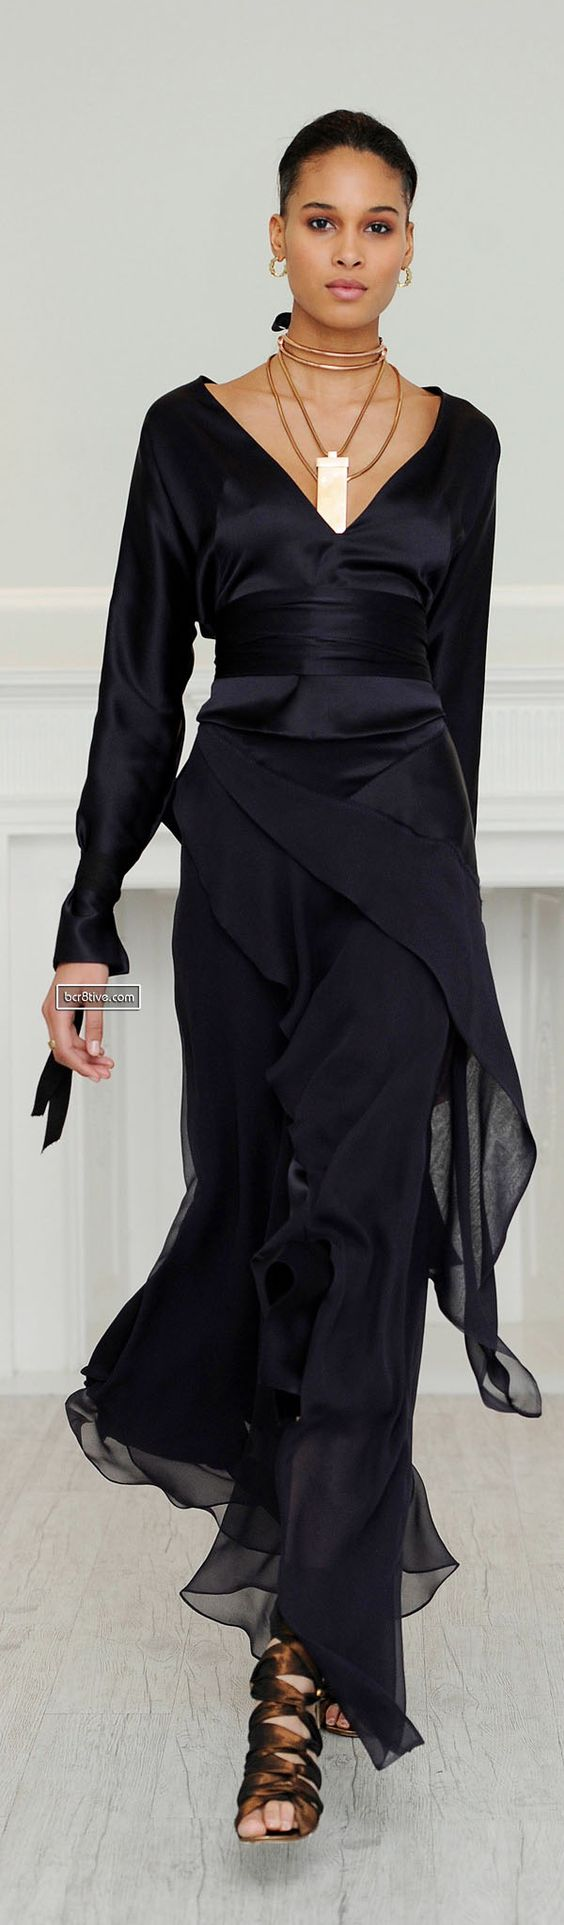 juan carlos obando fall winter 2013 14 ready to wear collection winter fashion sleeve and. Black Bedroom Furniture Sets. Home Design Ideas